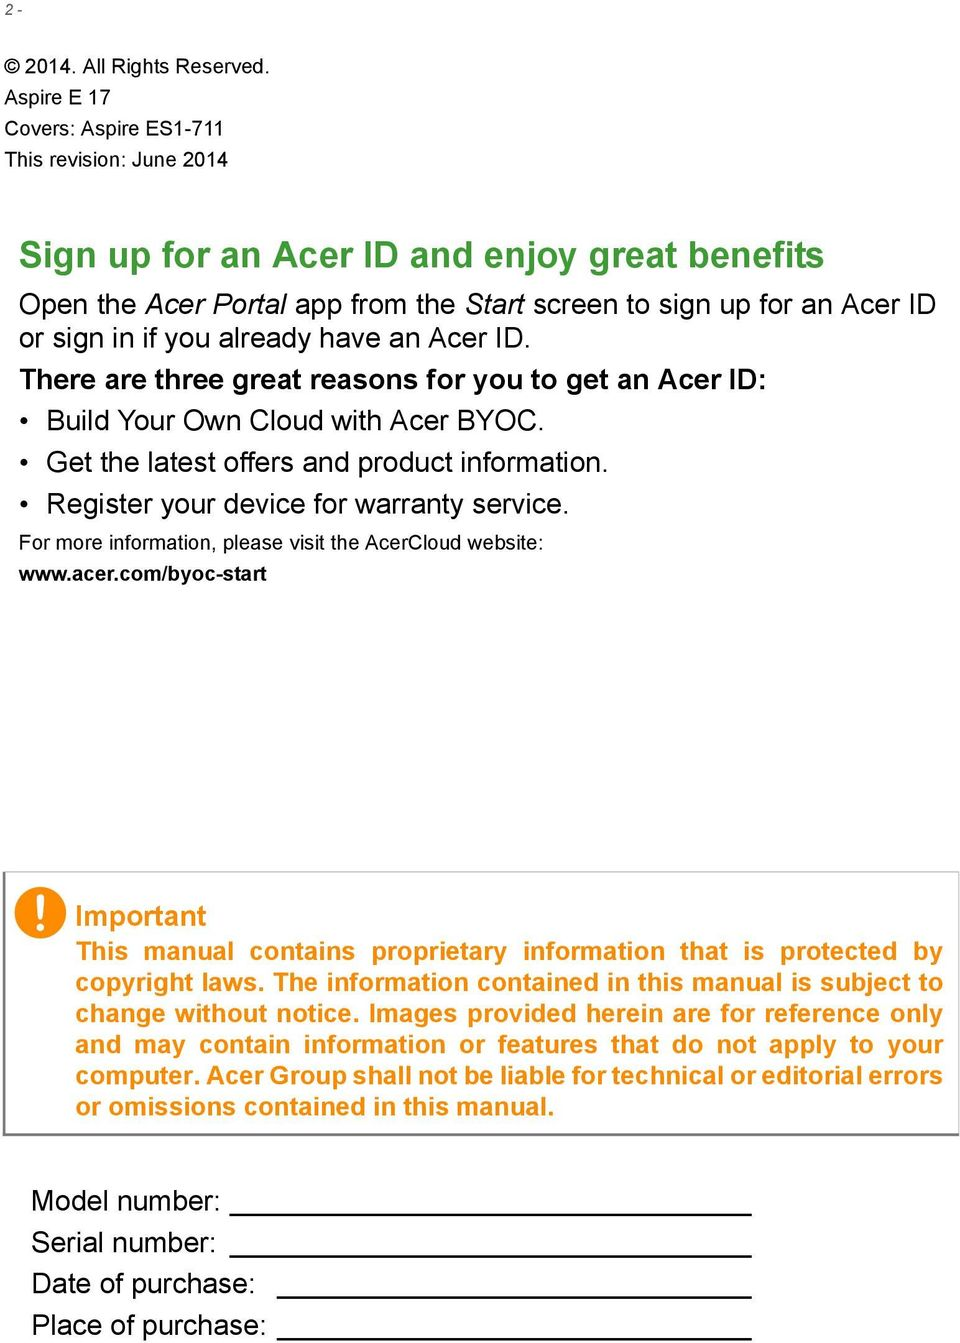 already have an Acer ID. There are three great reasons for you to get an Acer ID: Build Your Own Cloud with Acer BYOC. Get the latest offers and product information.